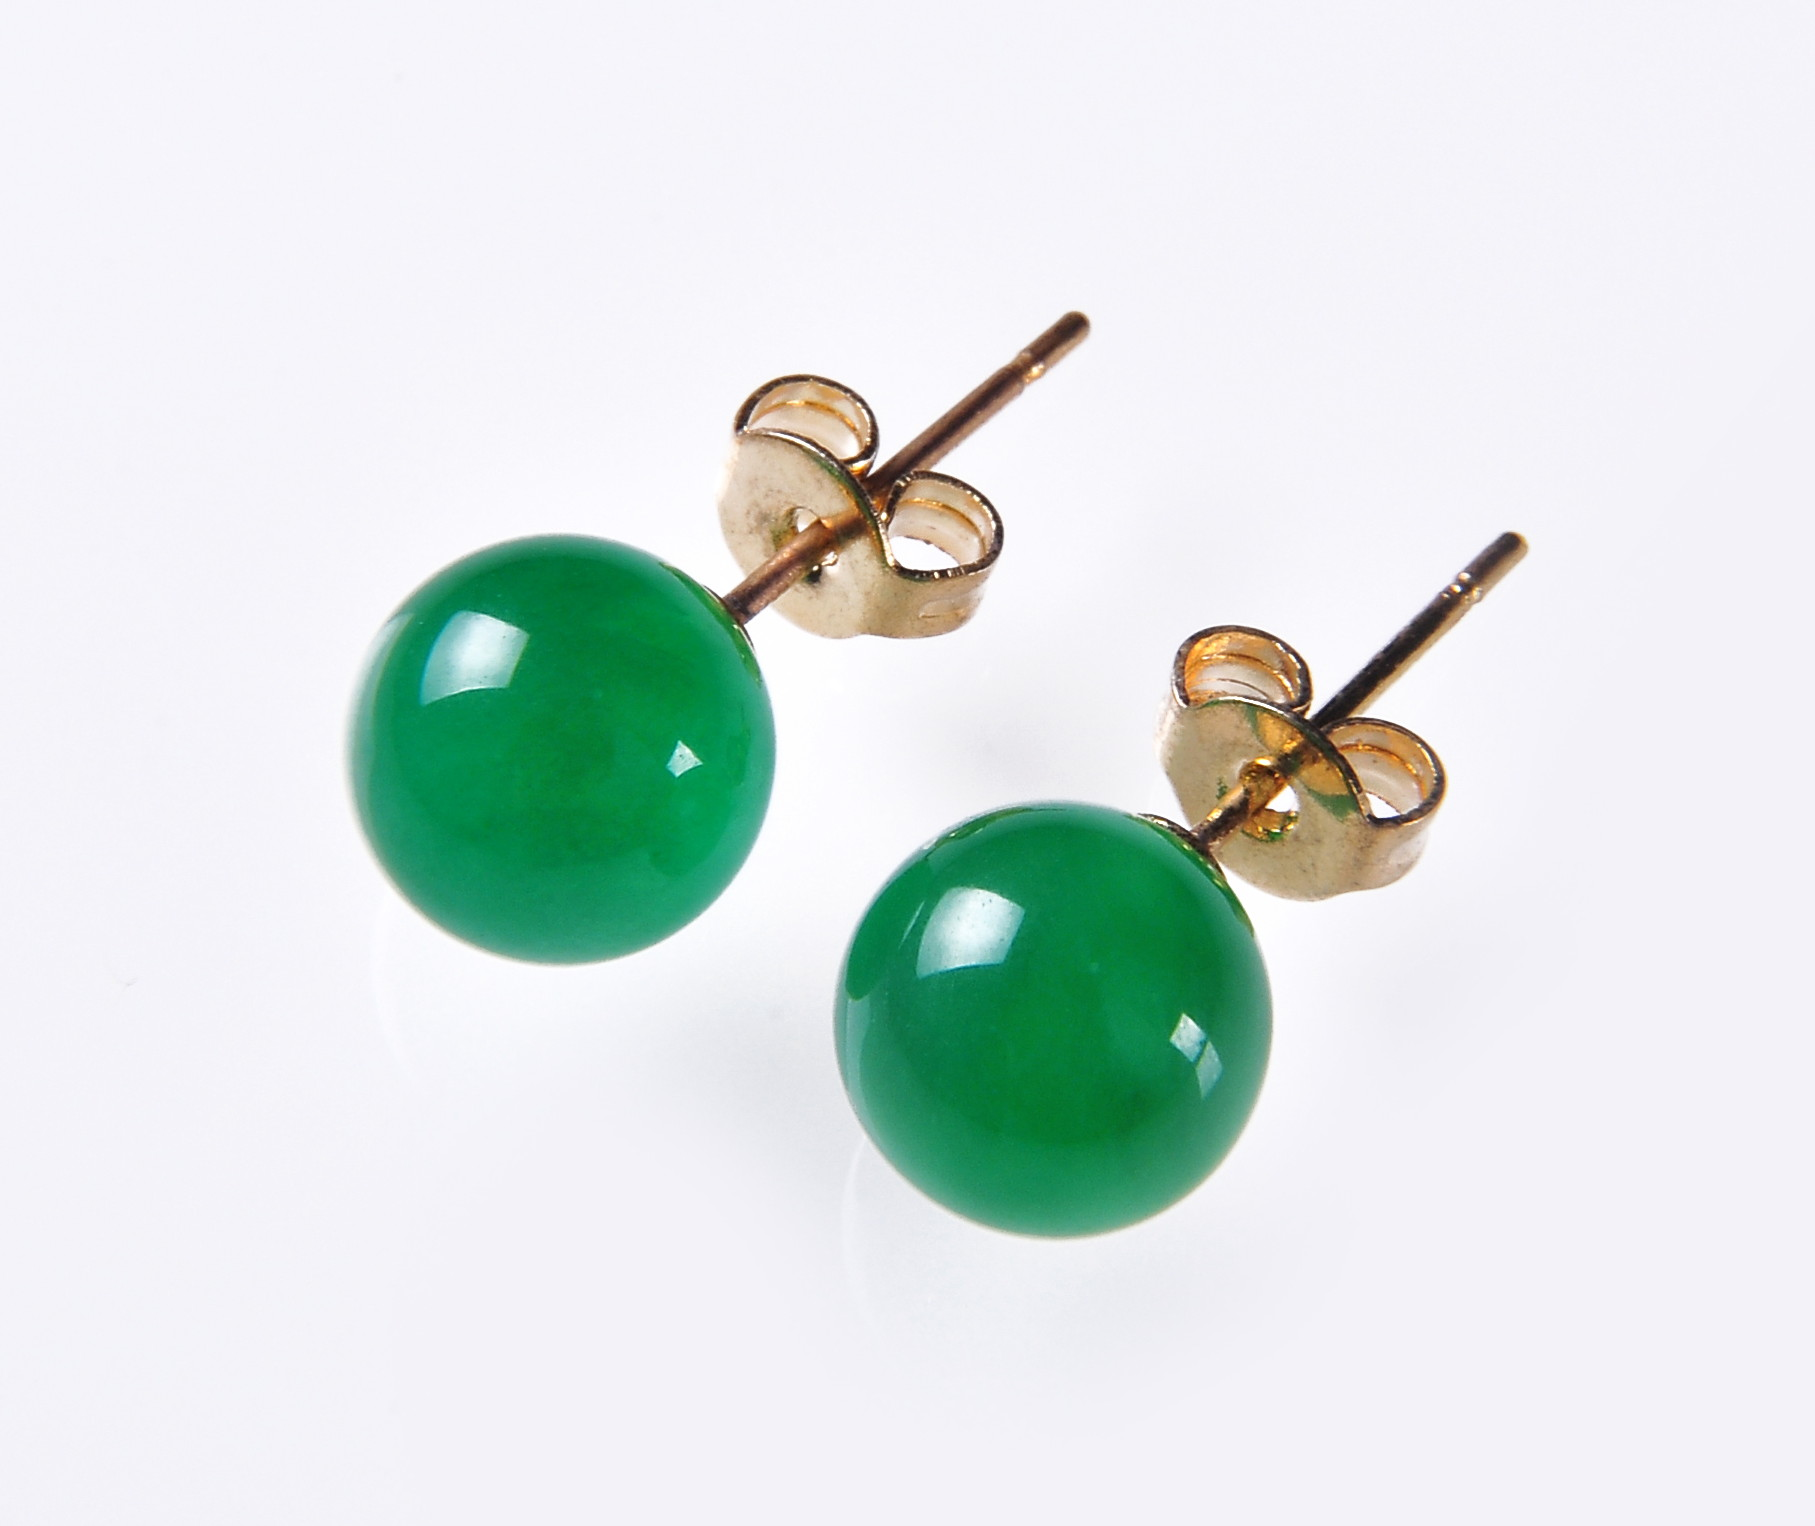 8.5 mm Green Malay Jade Stud Earrings  - er-jd2